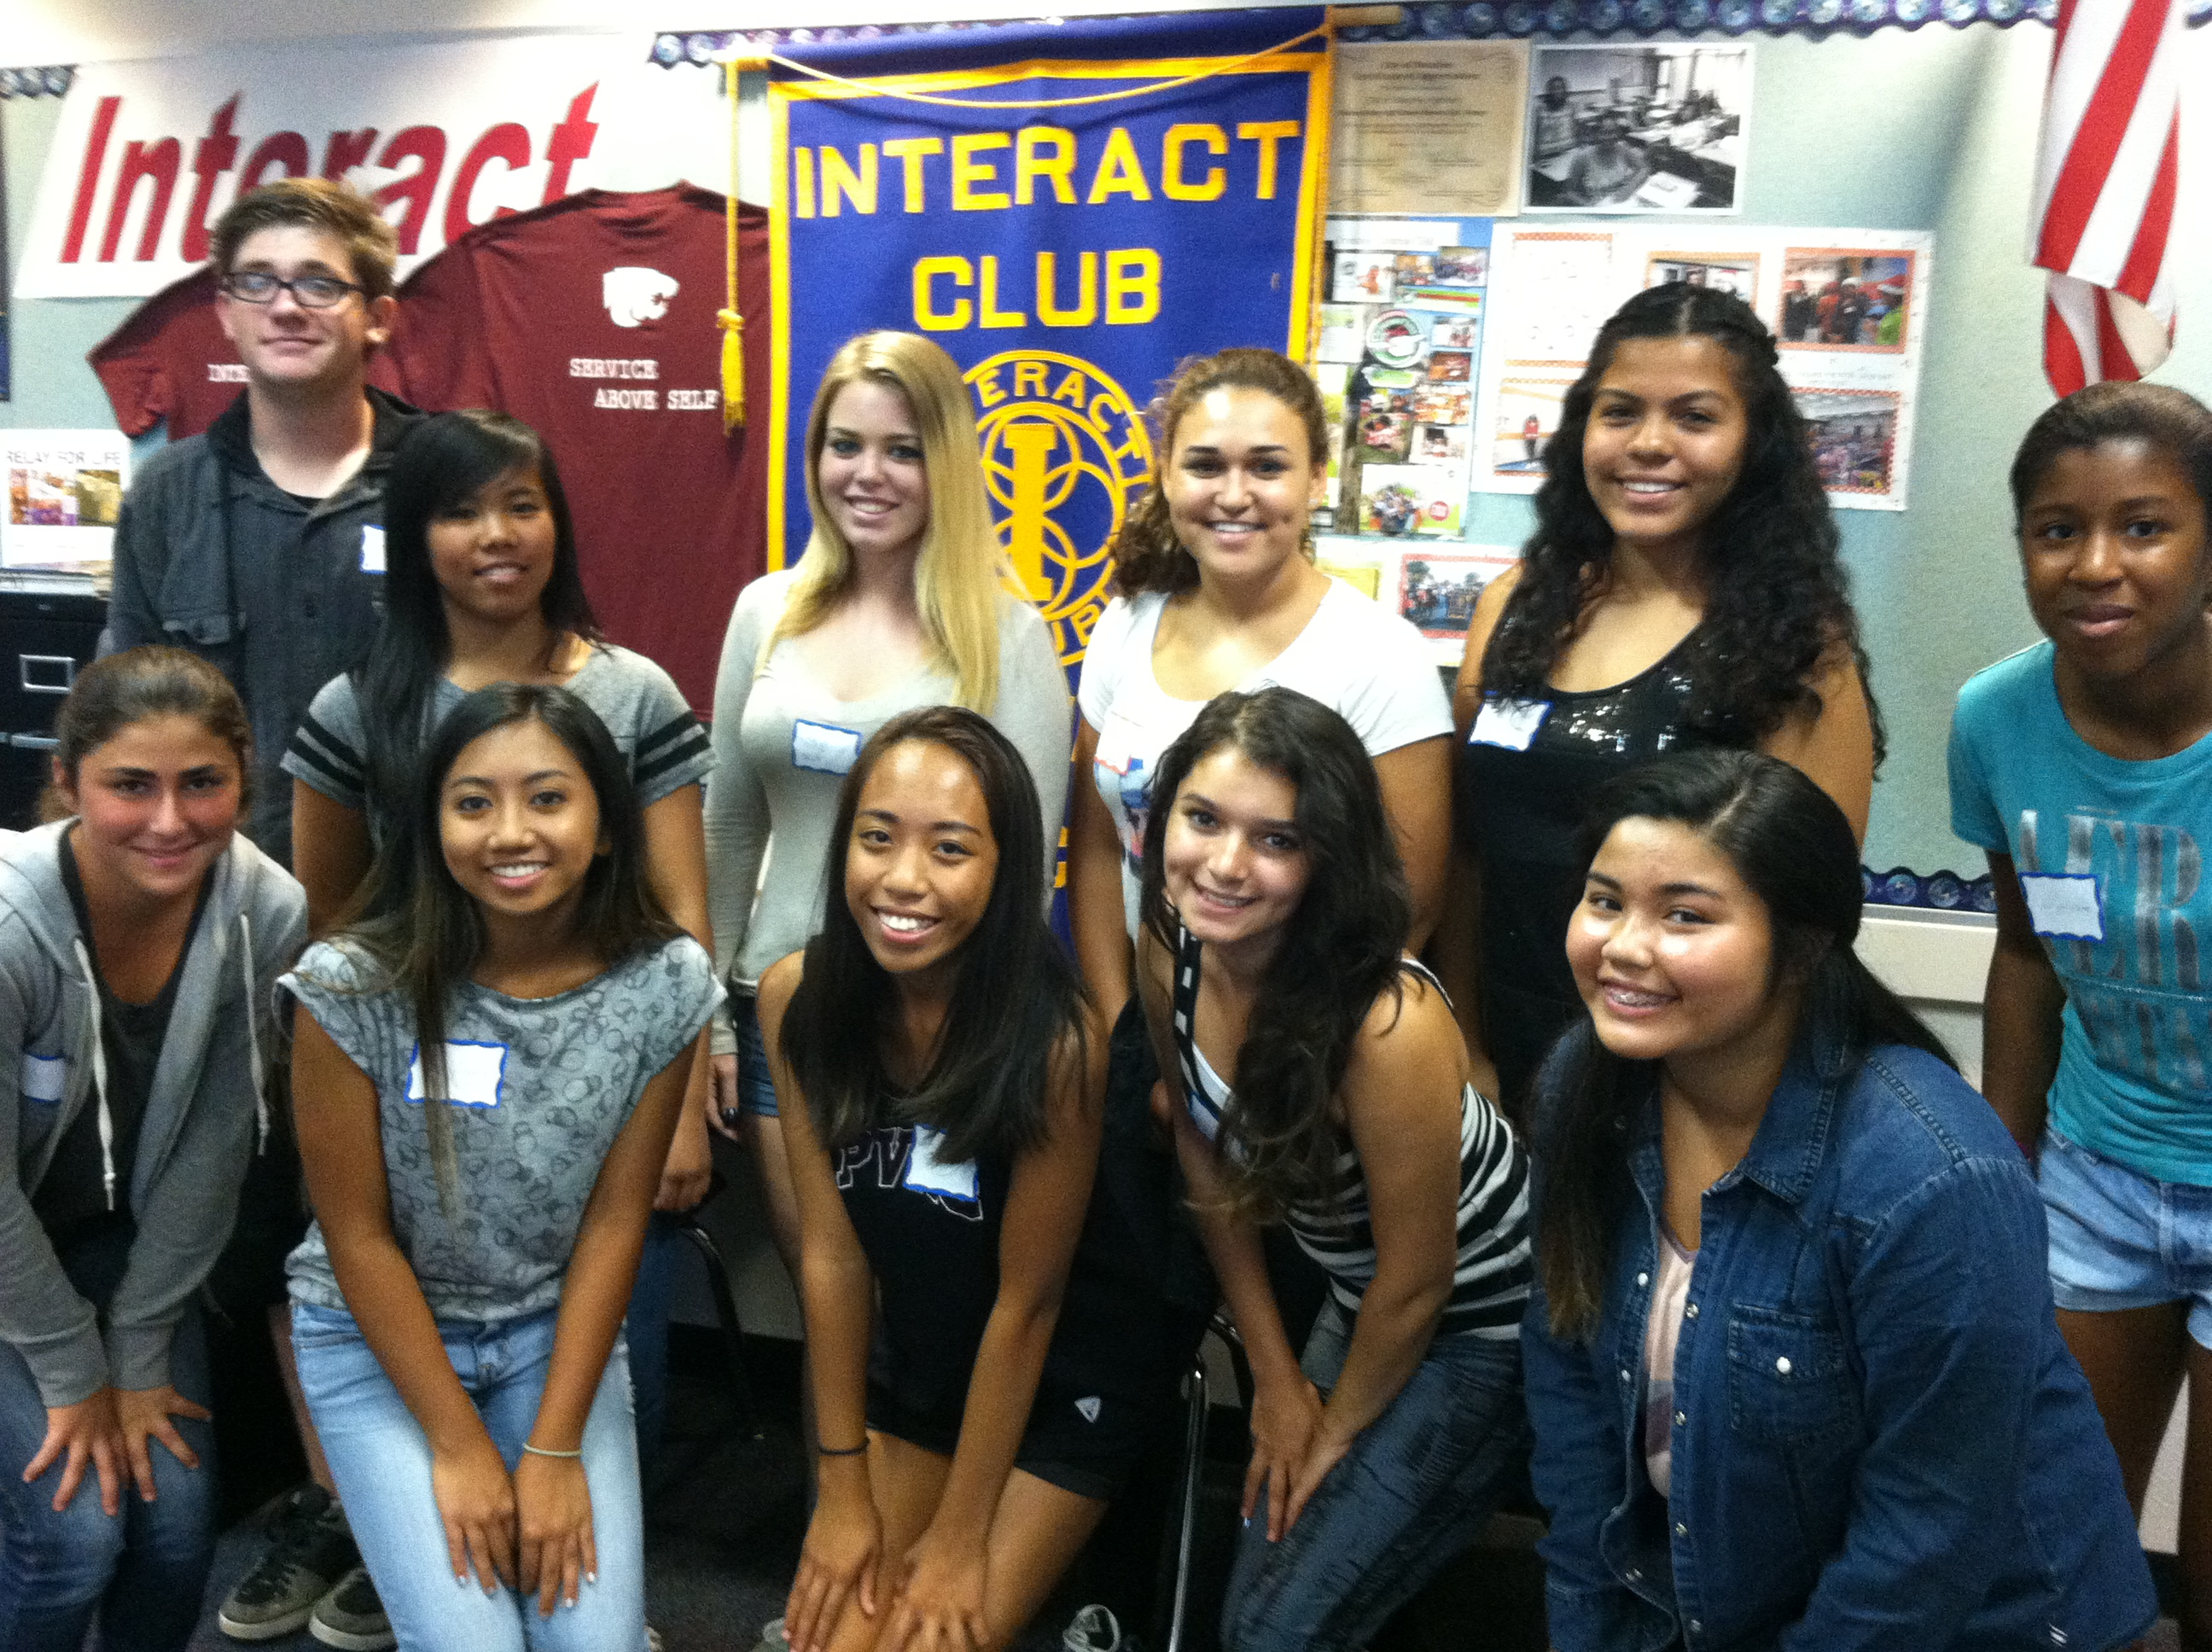 The Interact Club Photo8